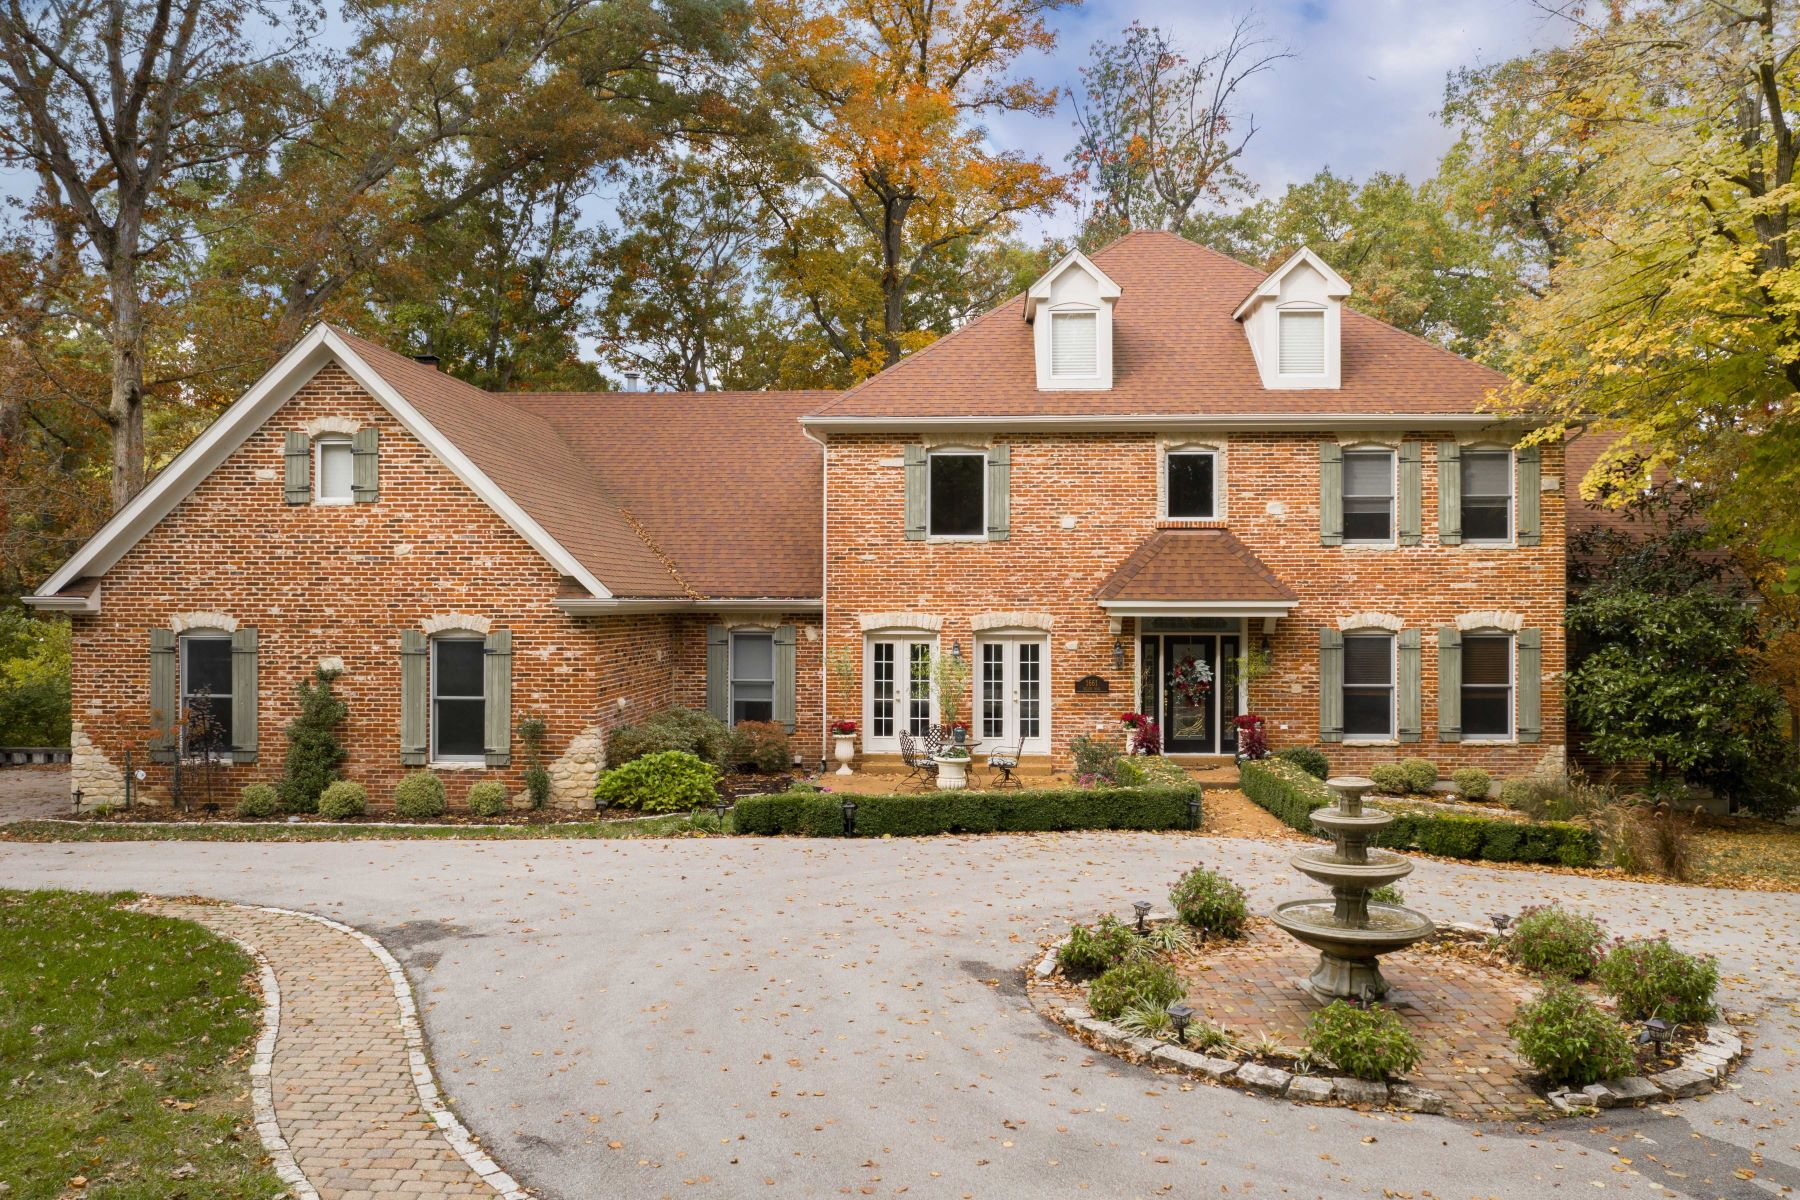 Property for Sale at French Country Estate in Chesterfield 1661 Wilson Avenue Chesterfield, Missouri 63005 United States